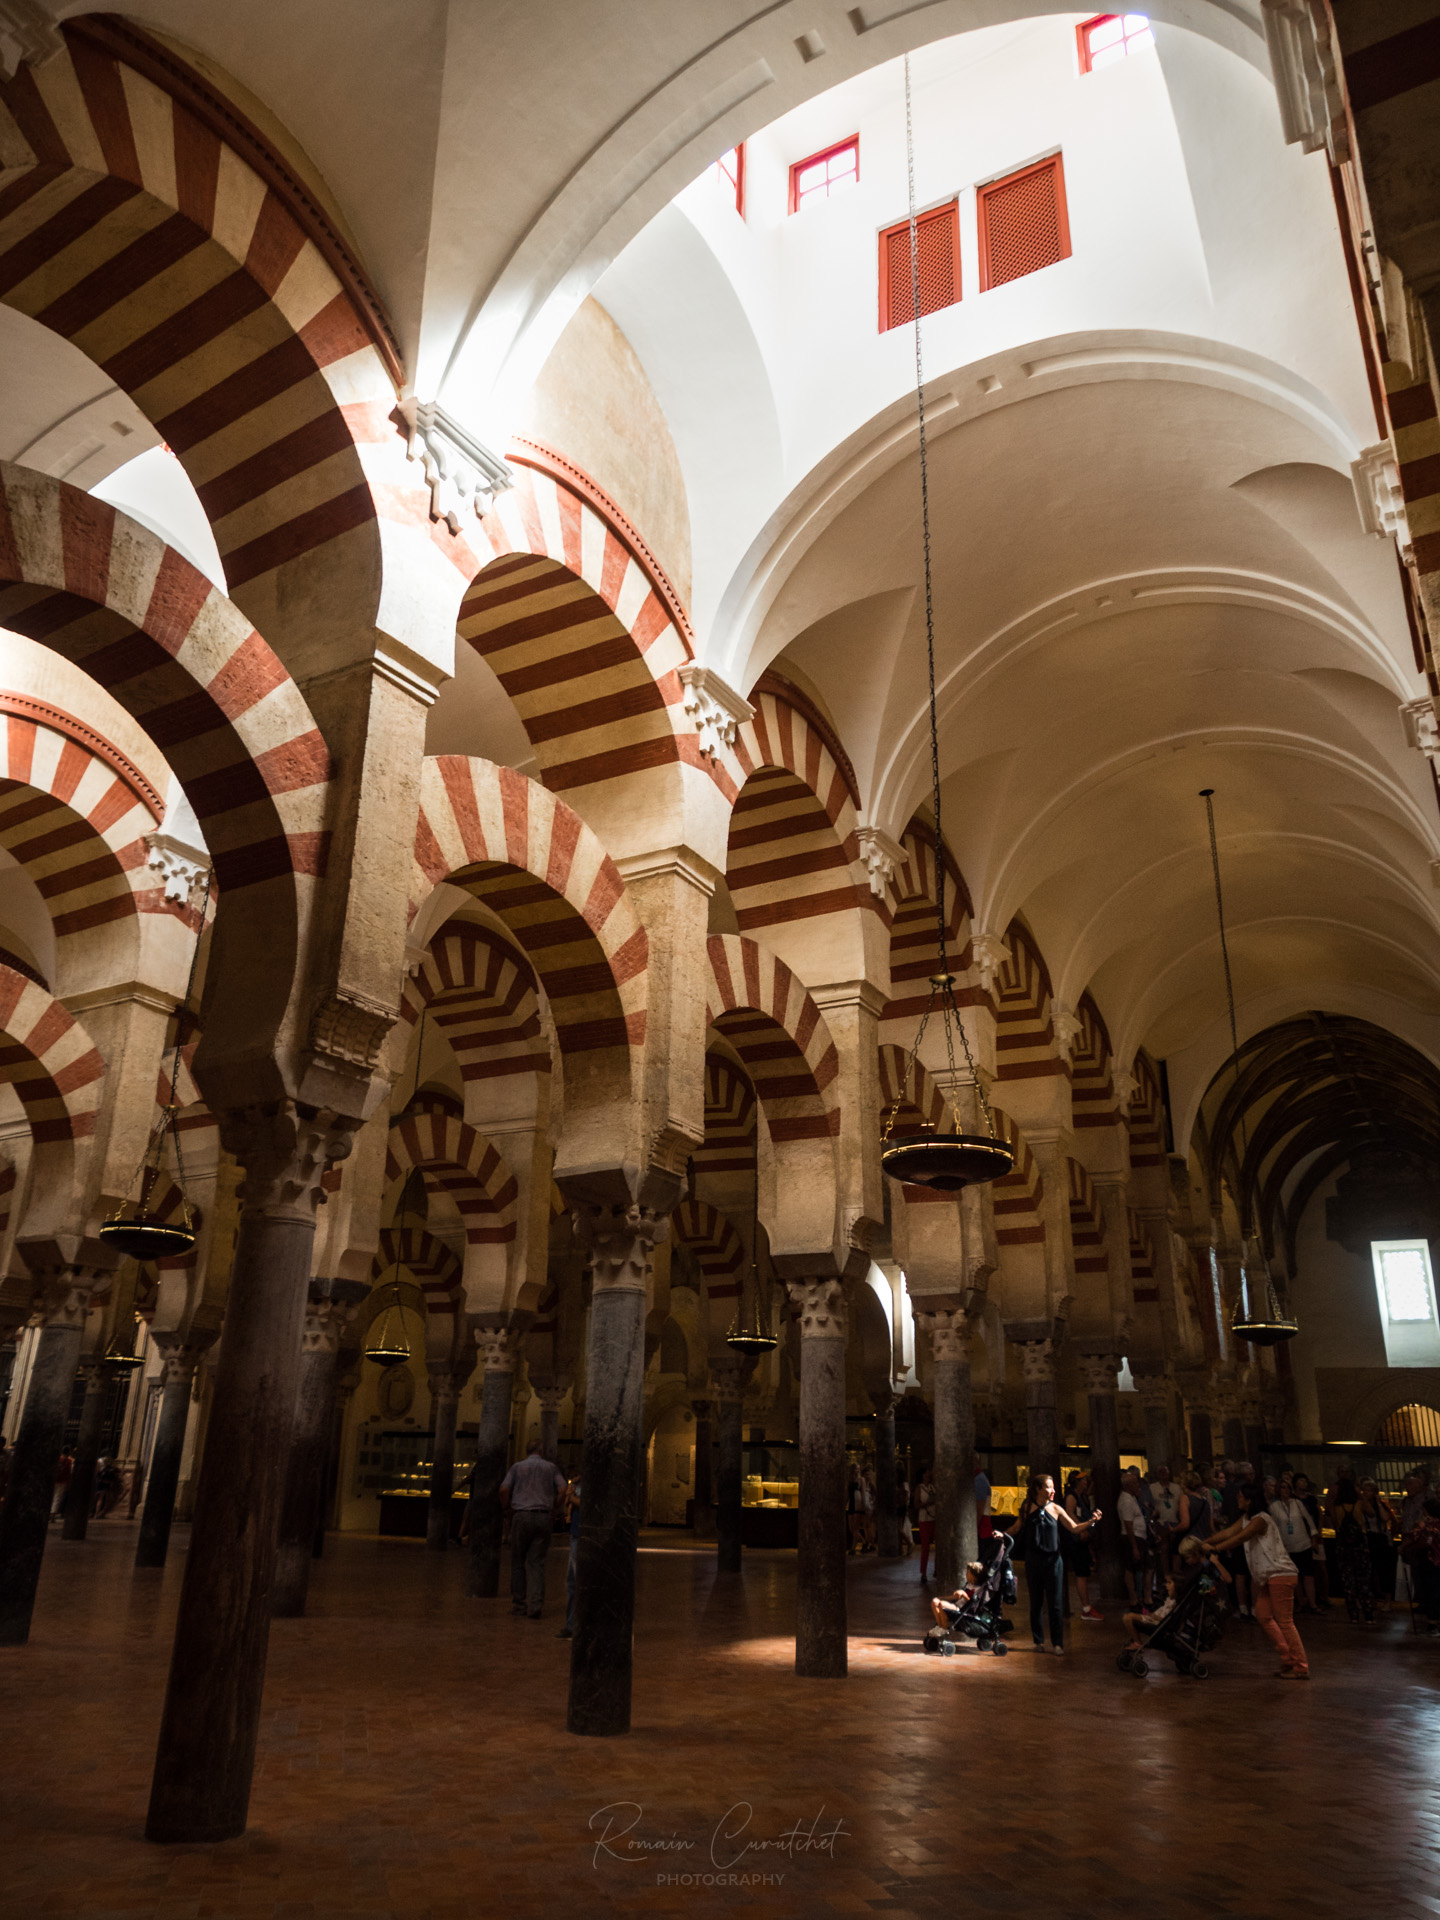 Mezquita, the Mosque-Cathedral of Cordoba, Andalucia, Spain